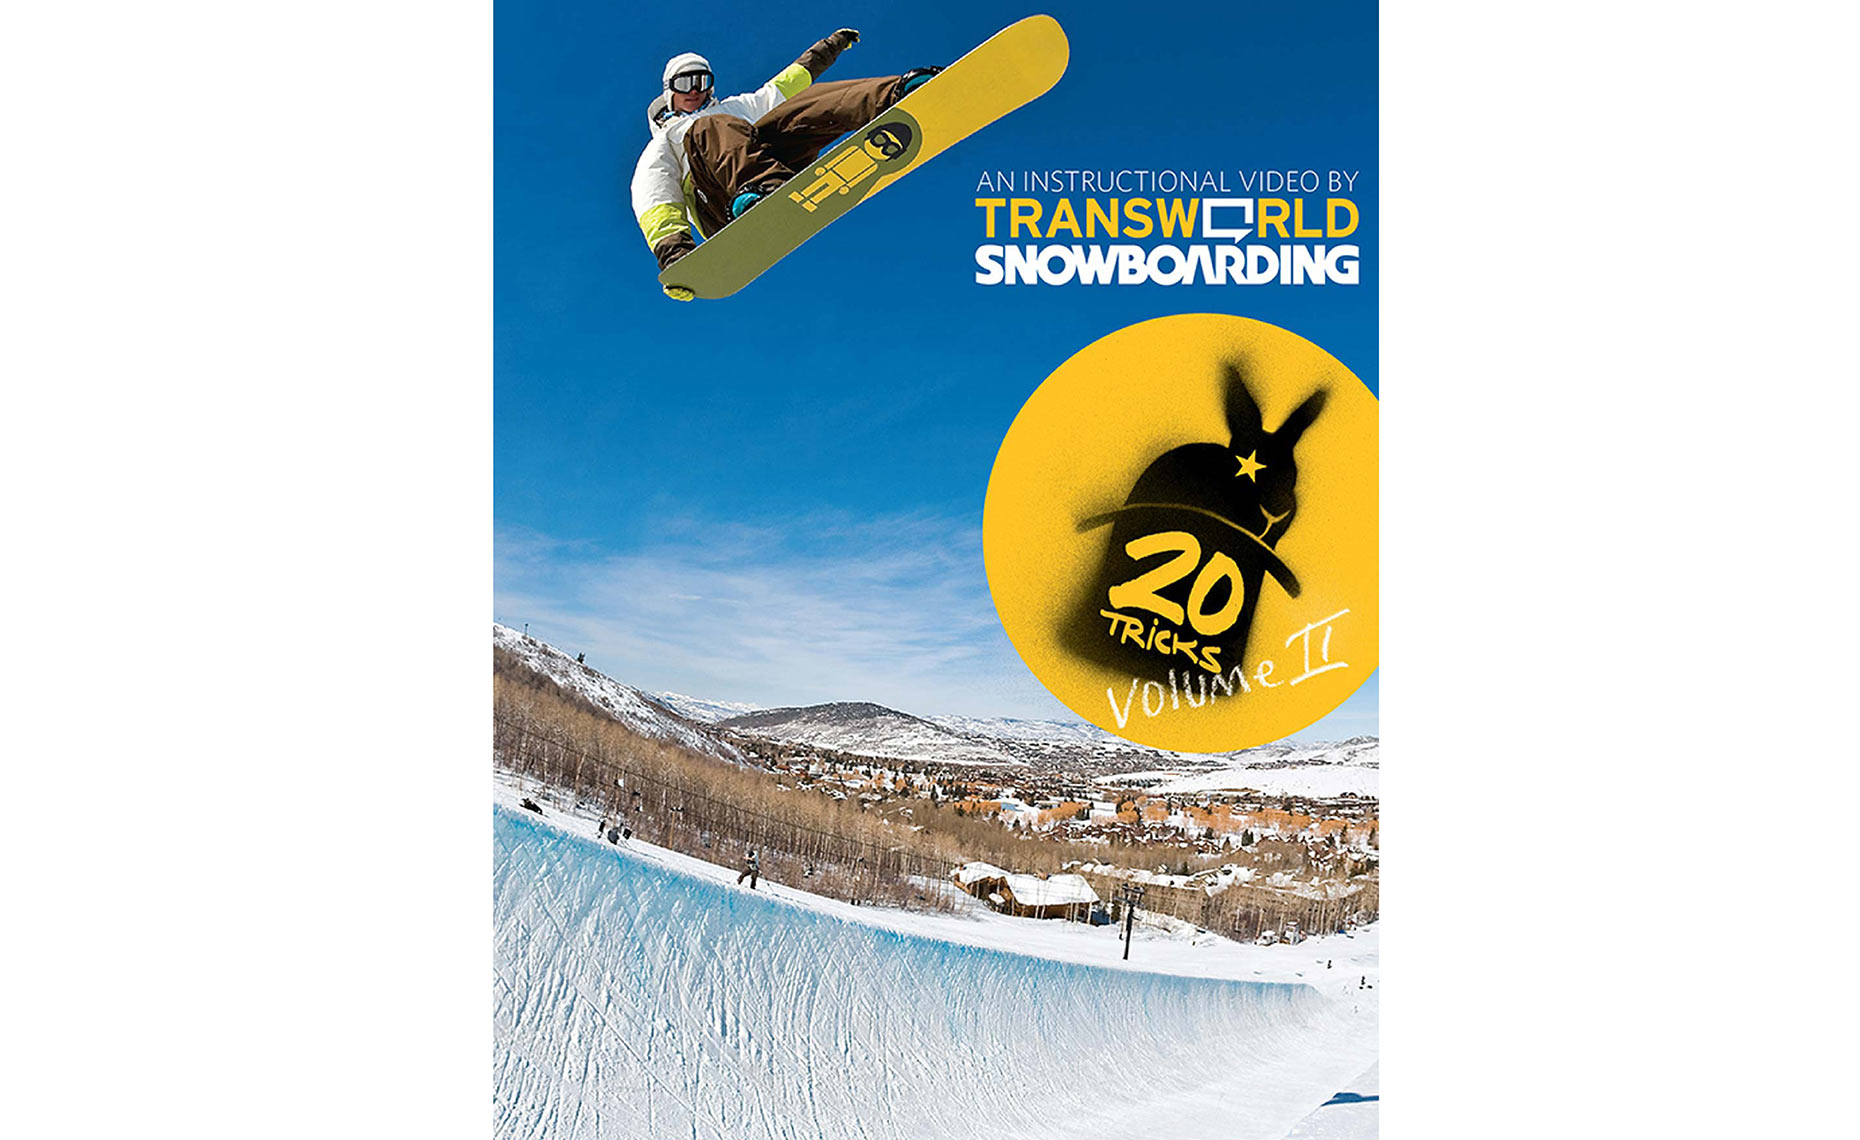 06-Markku-Koski-TransWorld-SNOWboarding-Chris-Wellhausen